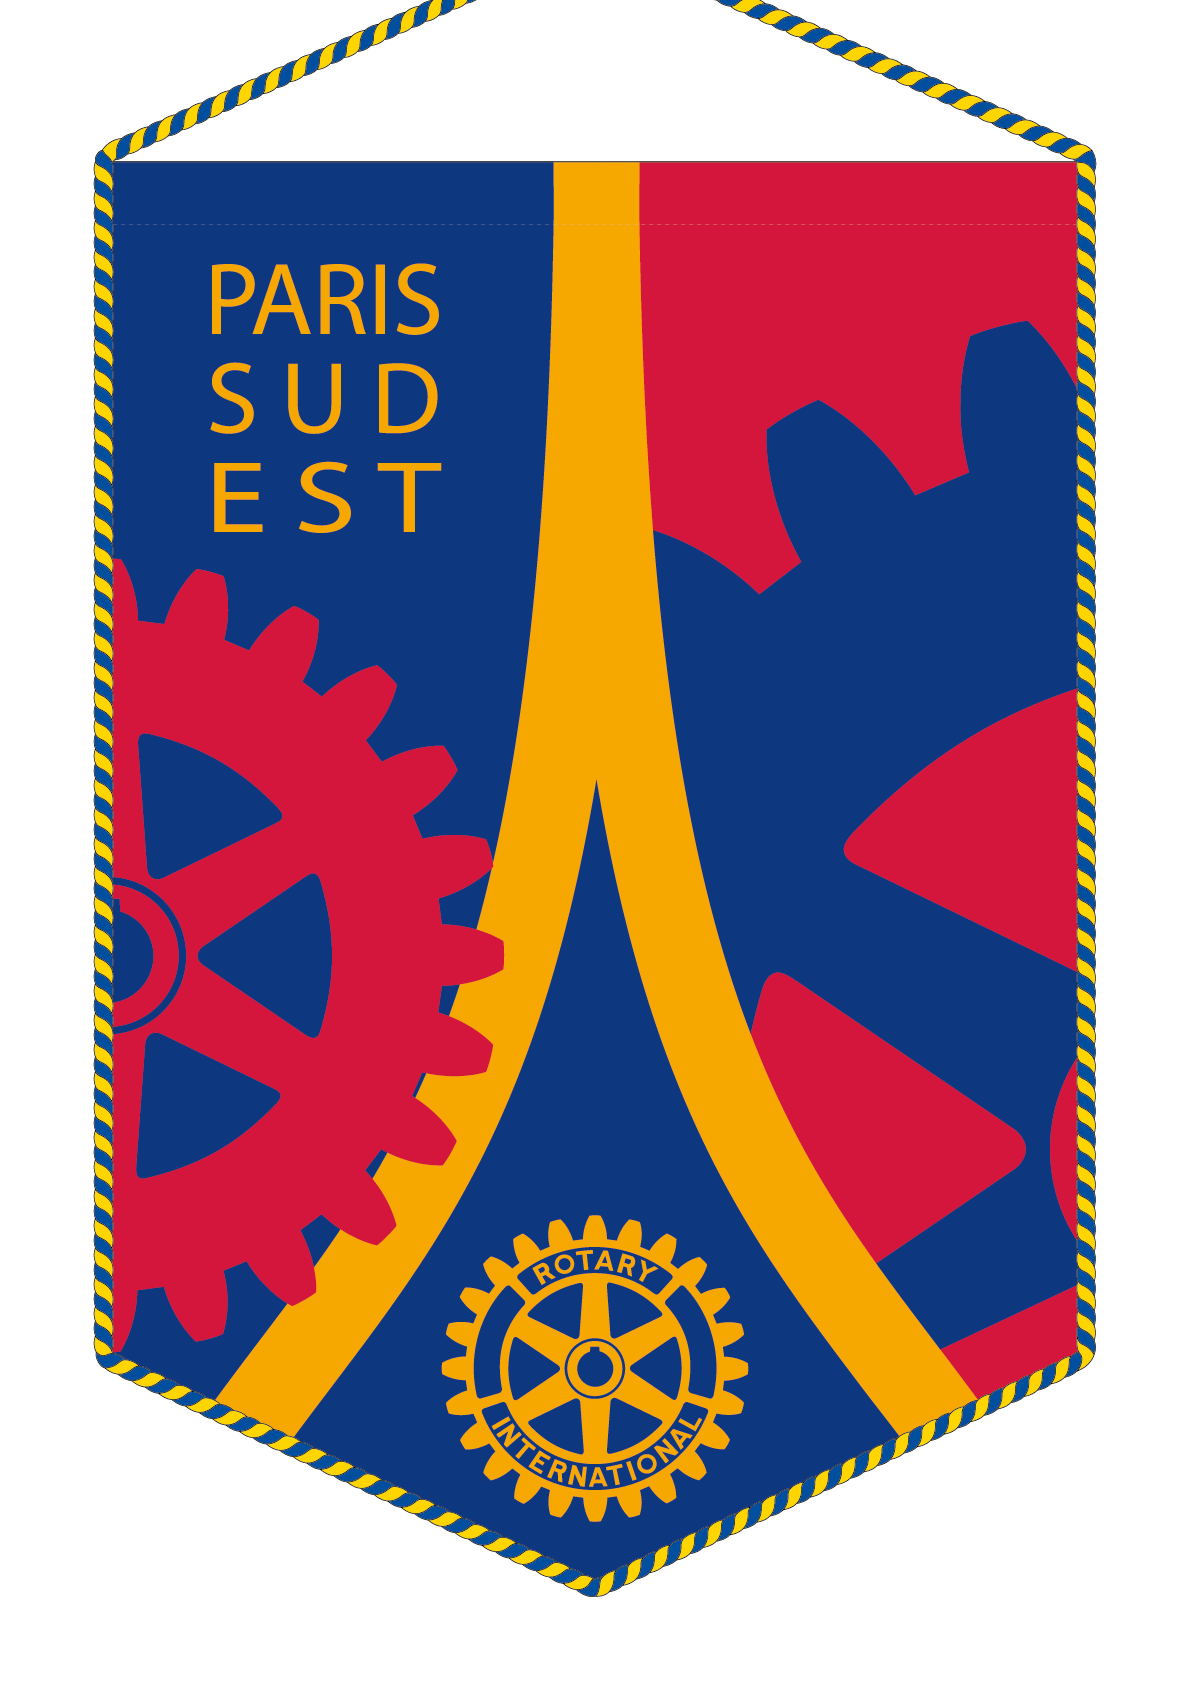 FANION ROTARY CLUB PARIS SUD EST